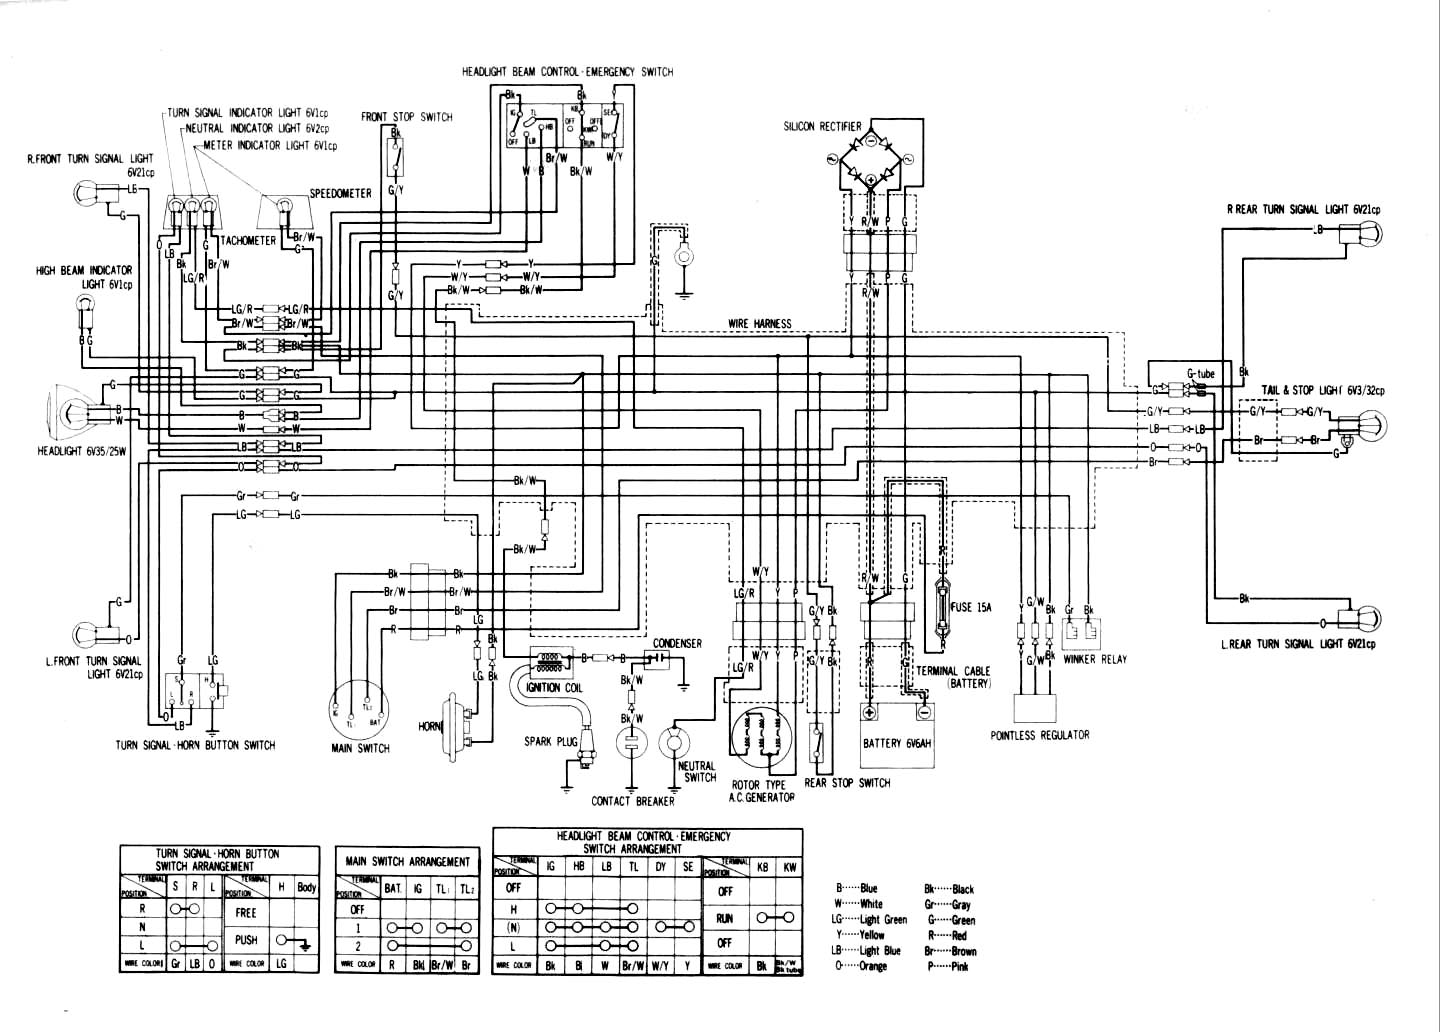 xl175 wiring diagrams 1987 honda xl600r wiring diagram at gsmx.co